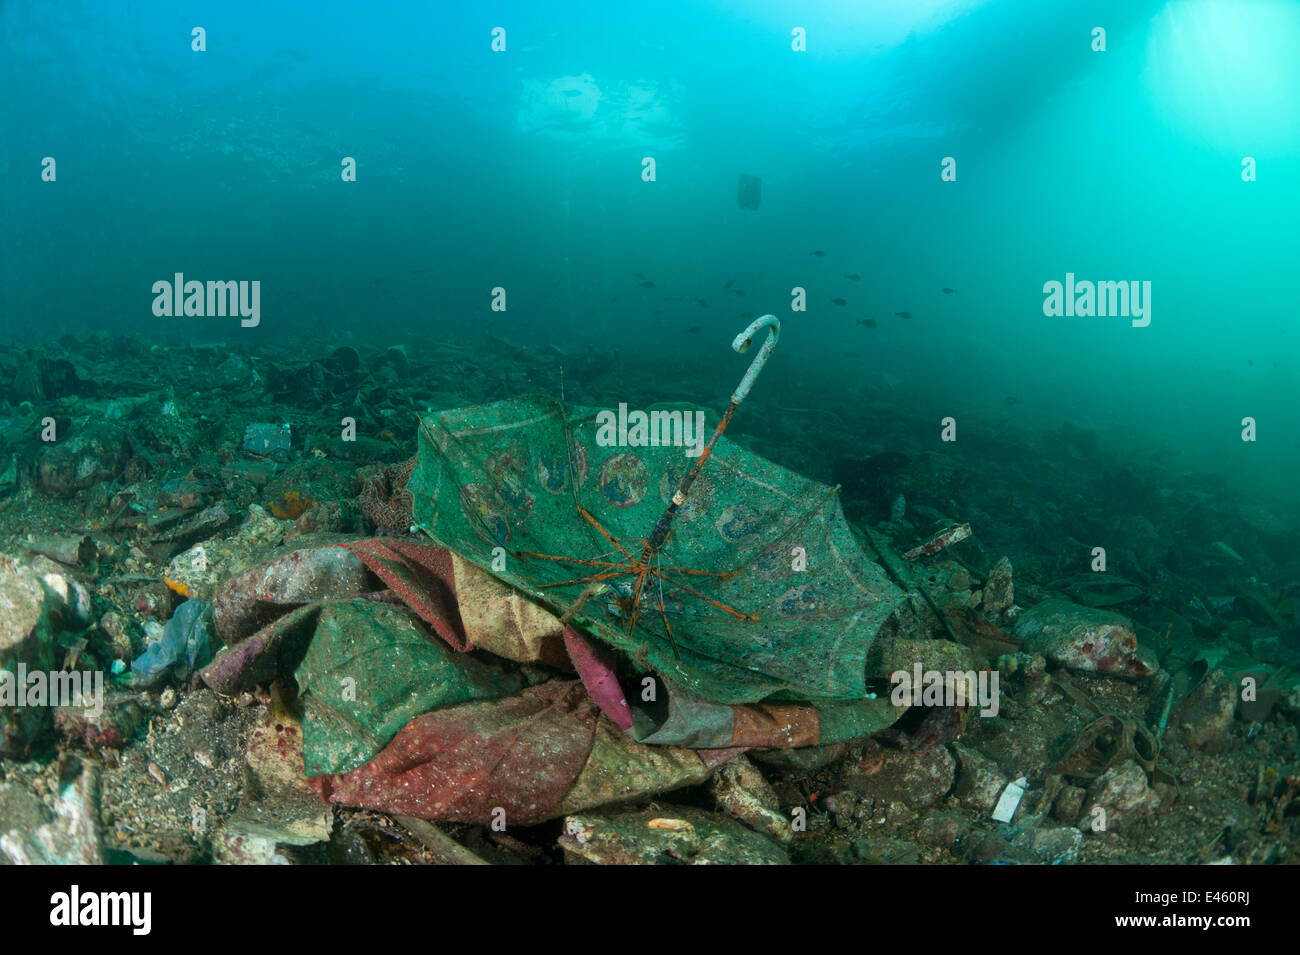 Umbrella and other human waste thrown out into the coastal waters, settling on the ground becoming marine life habitat, - Stock Image